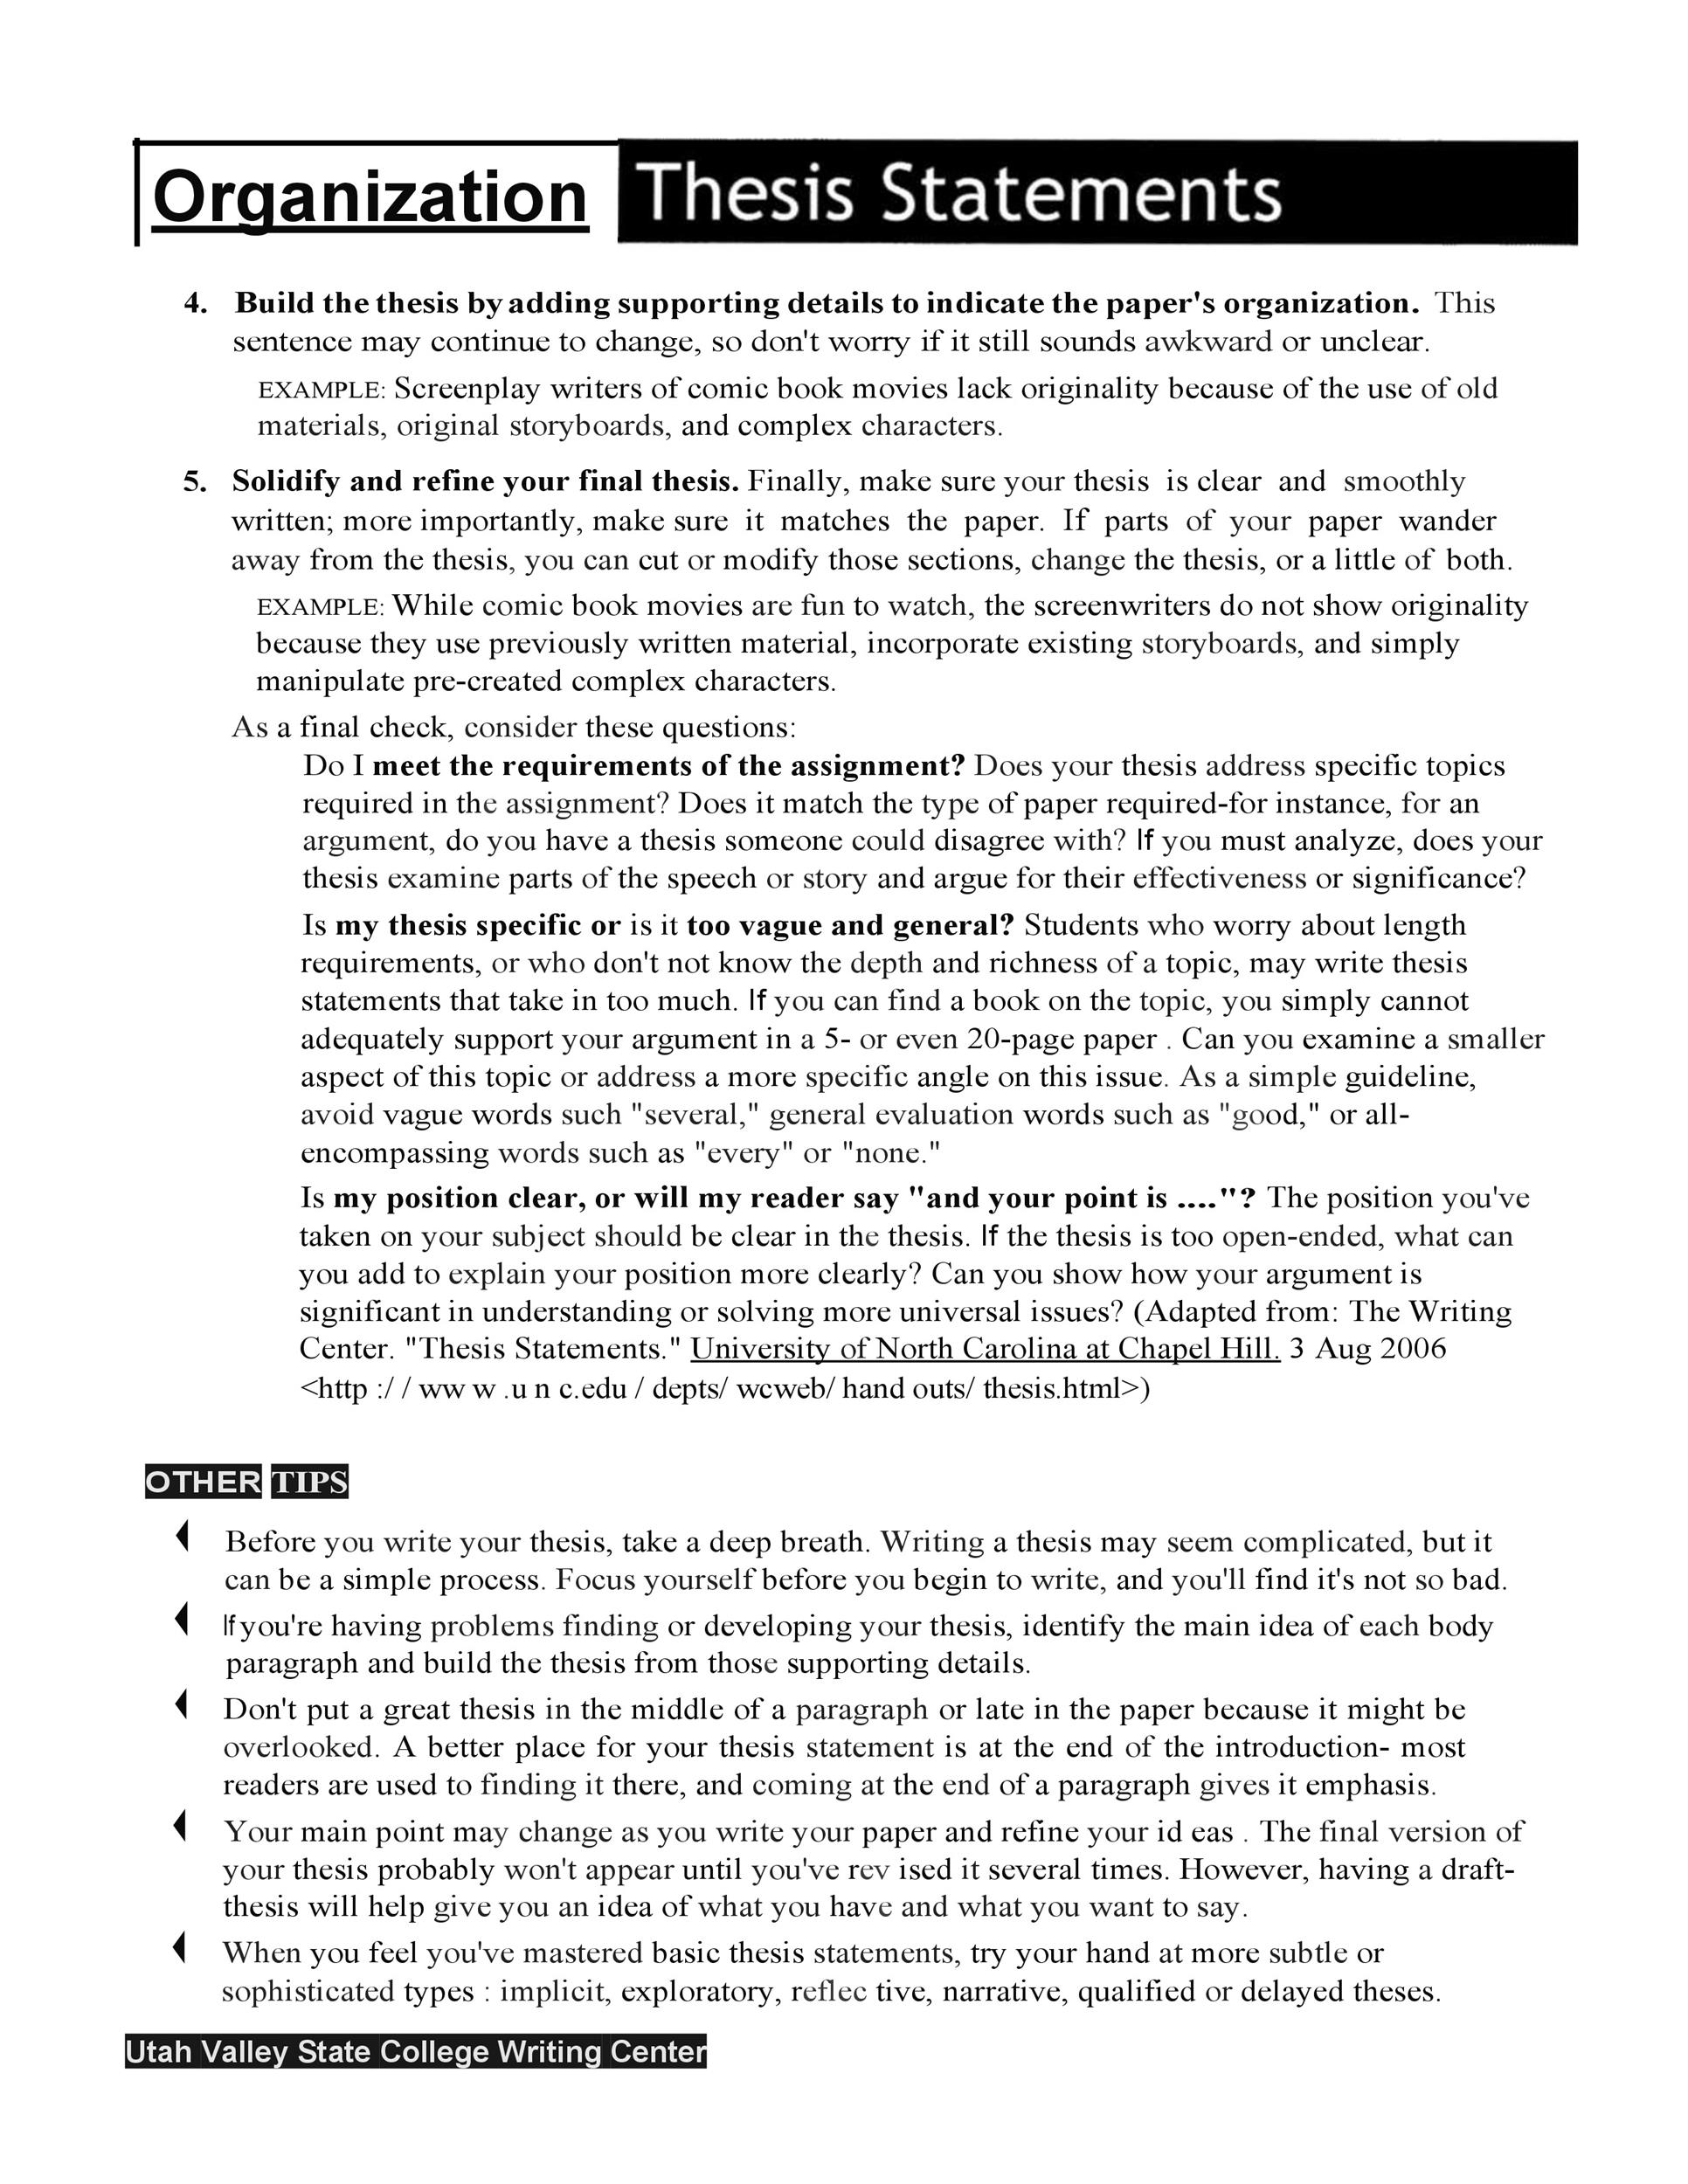 Free thesis statement template 18